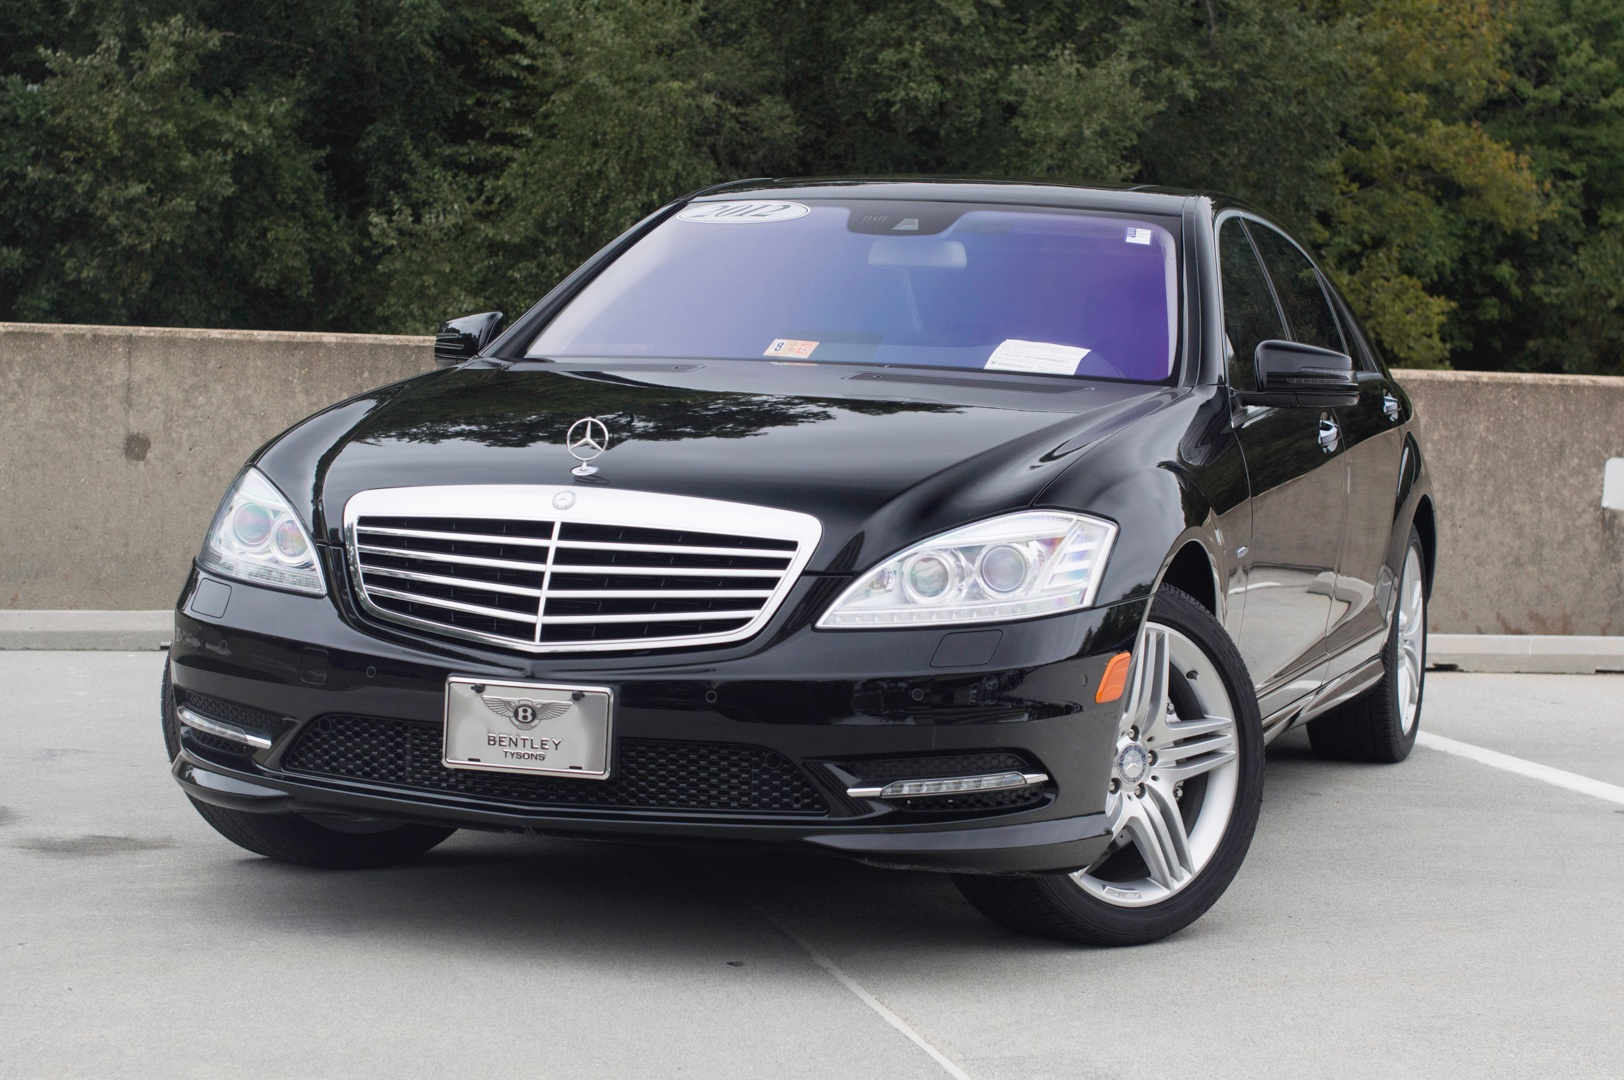 2012 mercedes benz s550 4matic s550 4matic stock p454190 for Search mercedes benz inventory